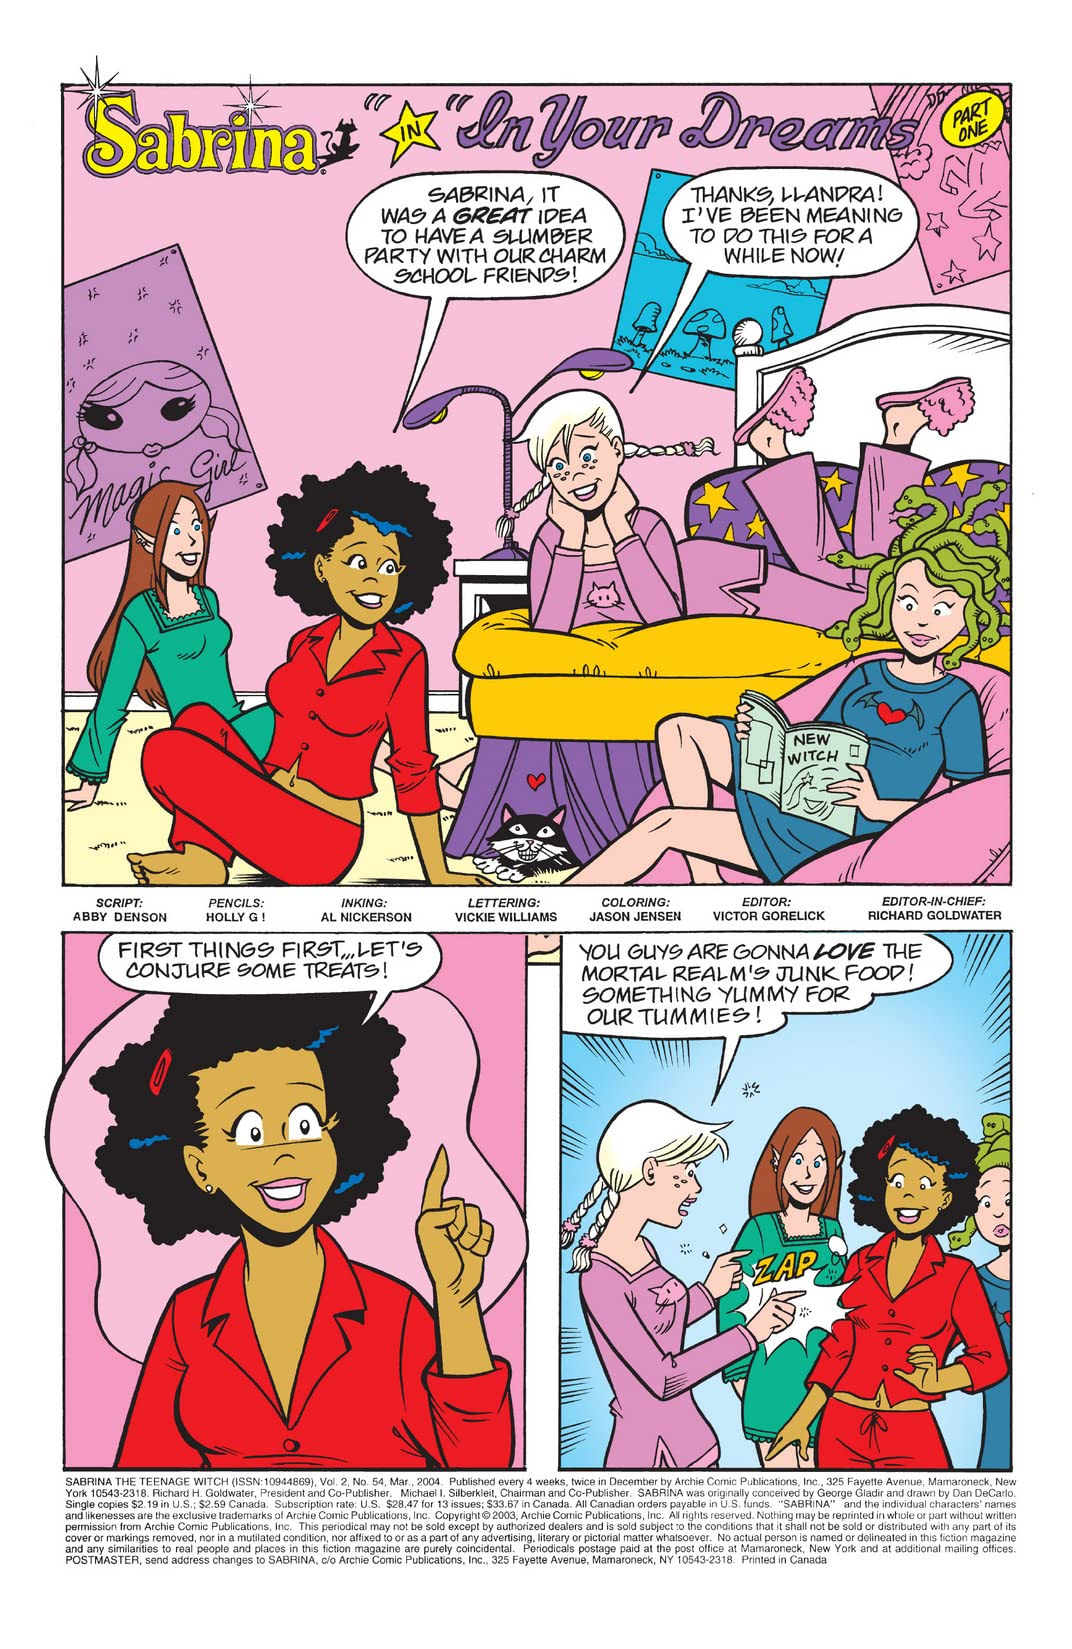 Sabrina the Teenage Witch #54